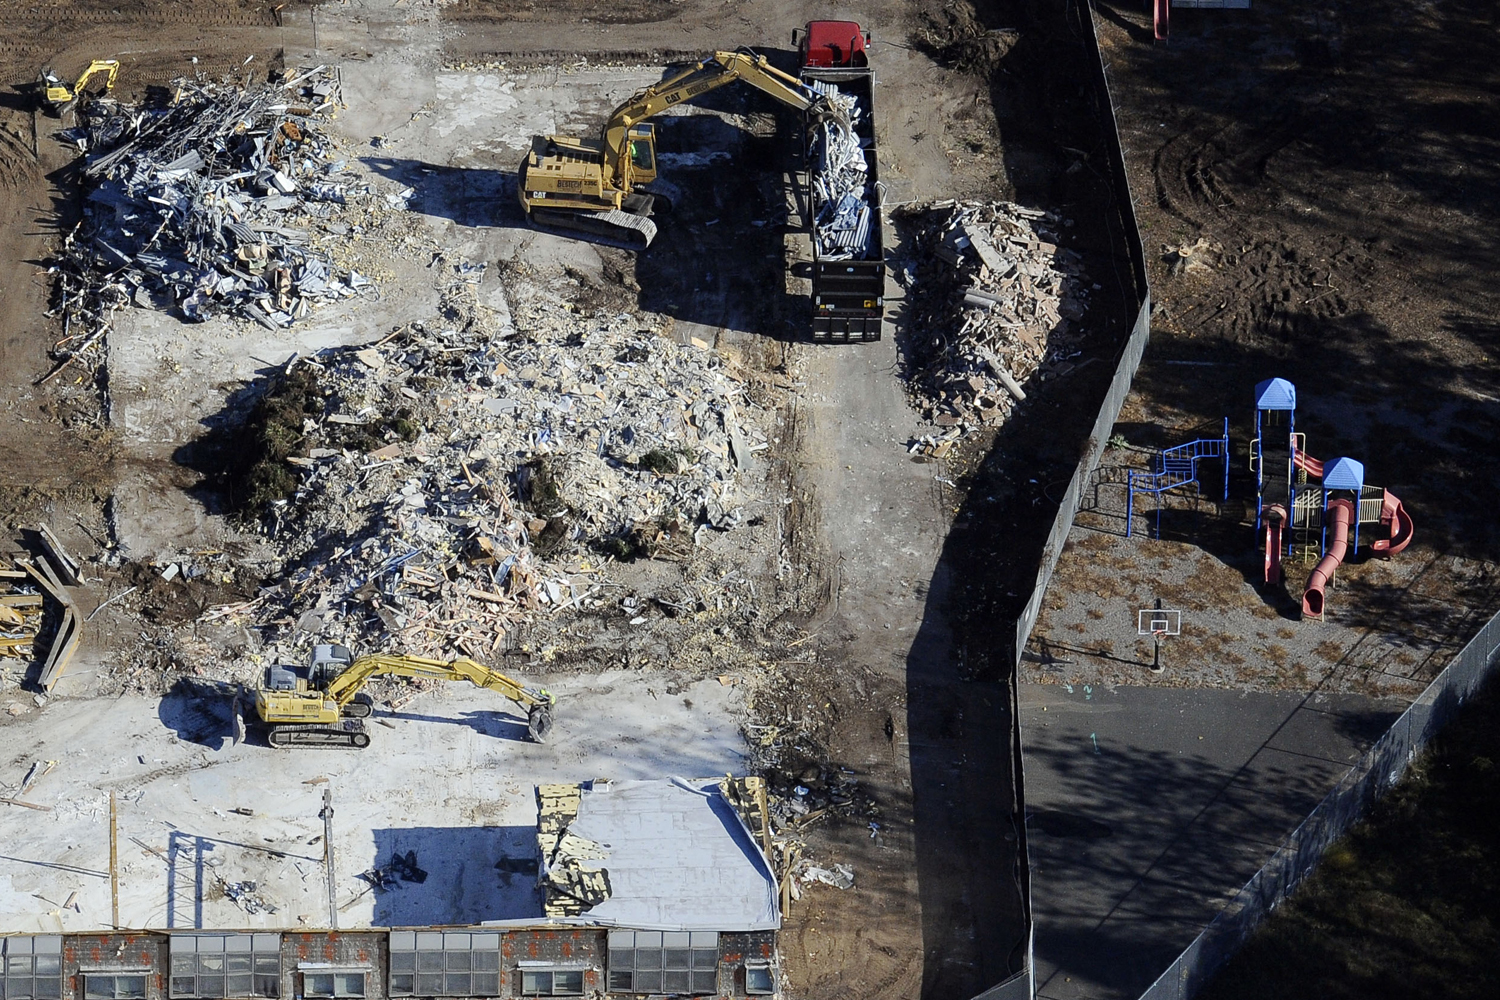 Oct. 28, 2013. Workers use backhoes to dig through the rubble as the demolition of Sandy Hook Elementary School continues, in Newtown, Conn.